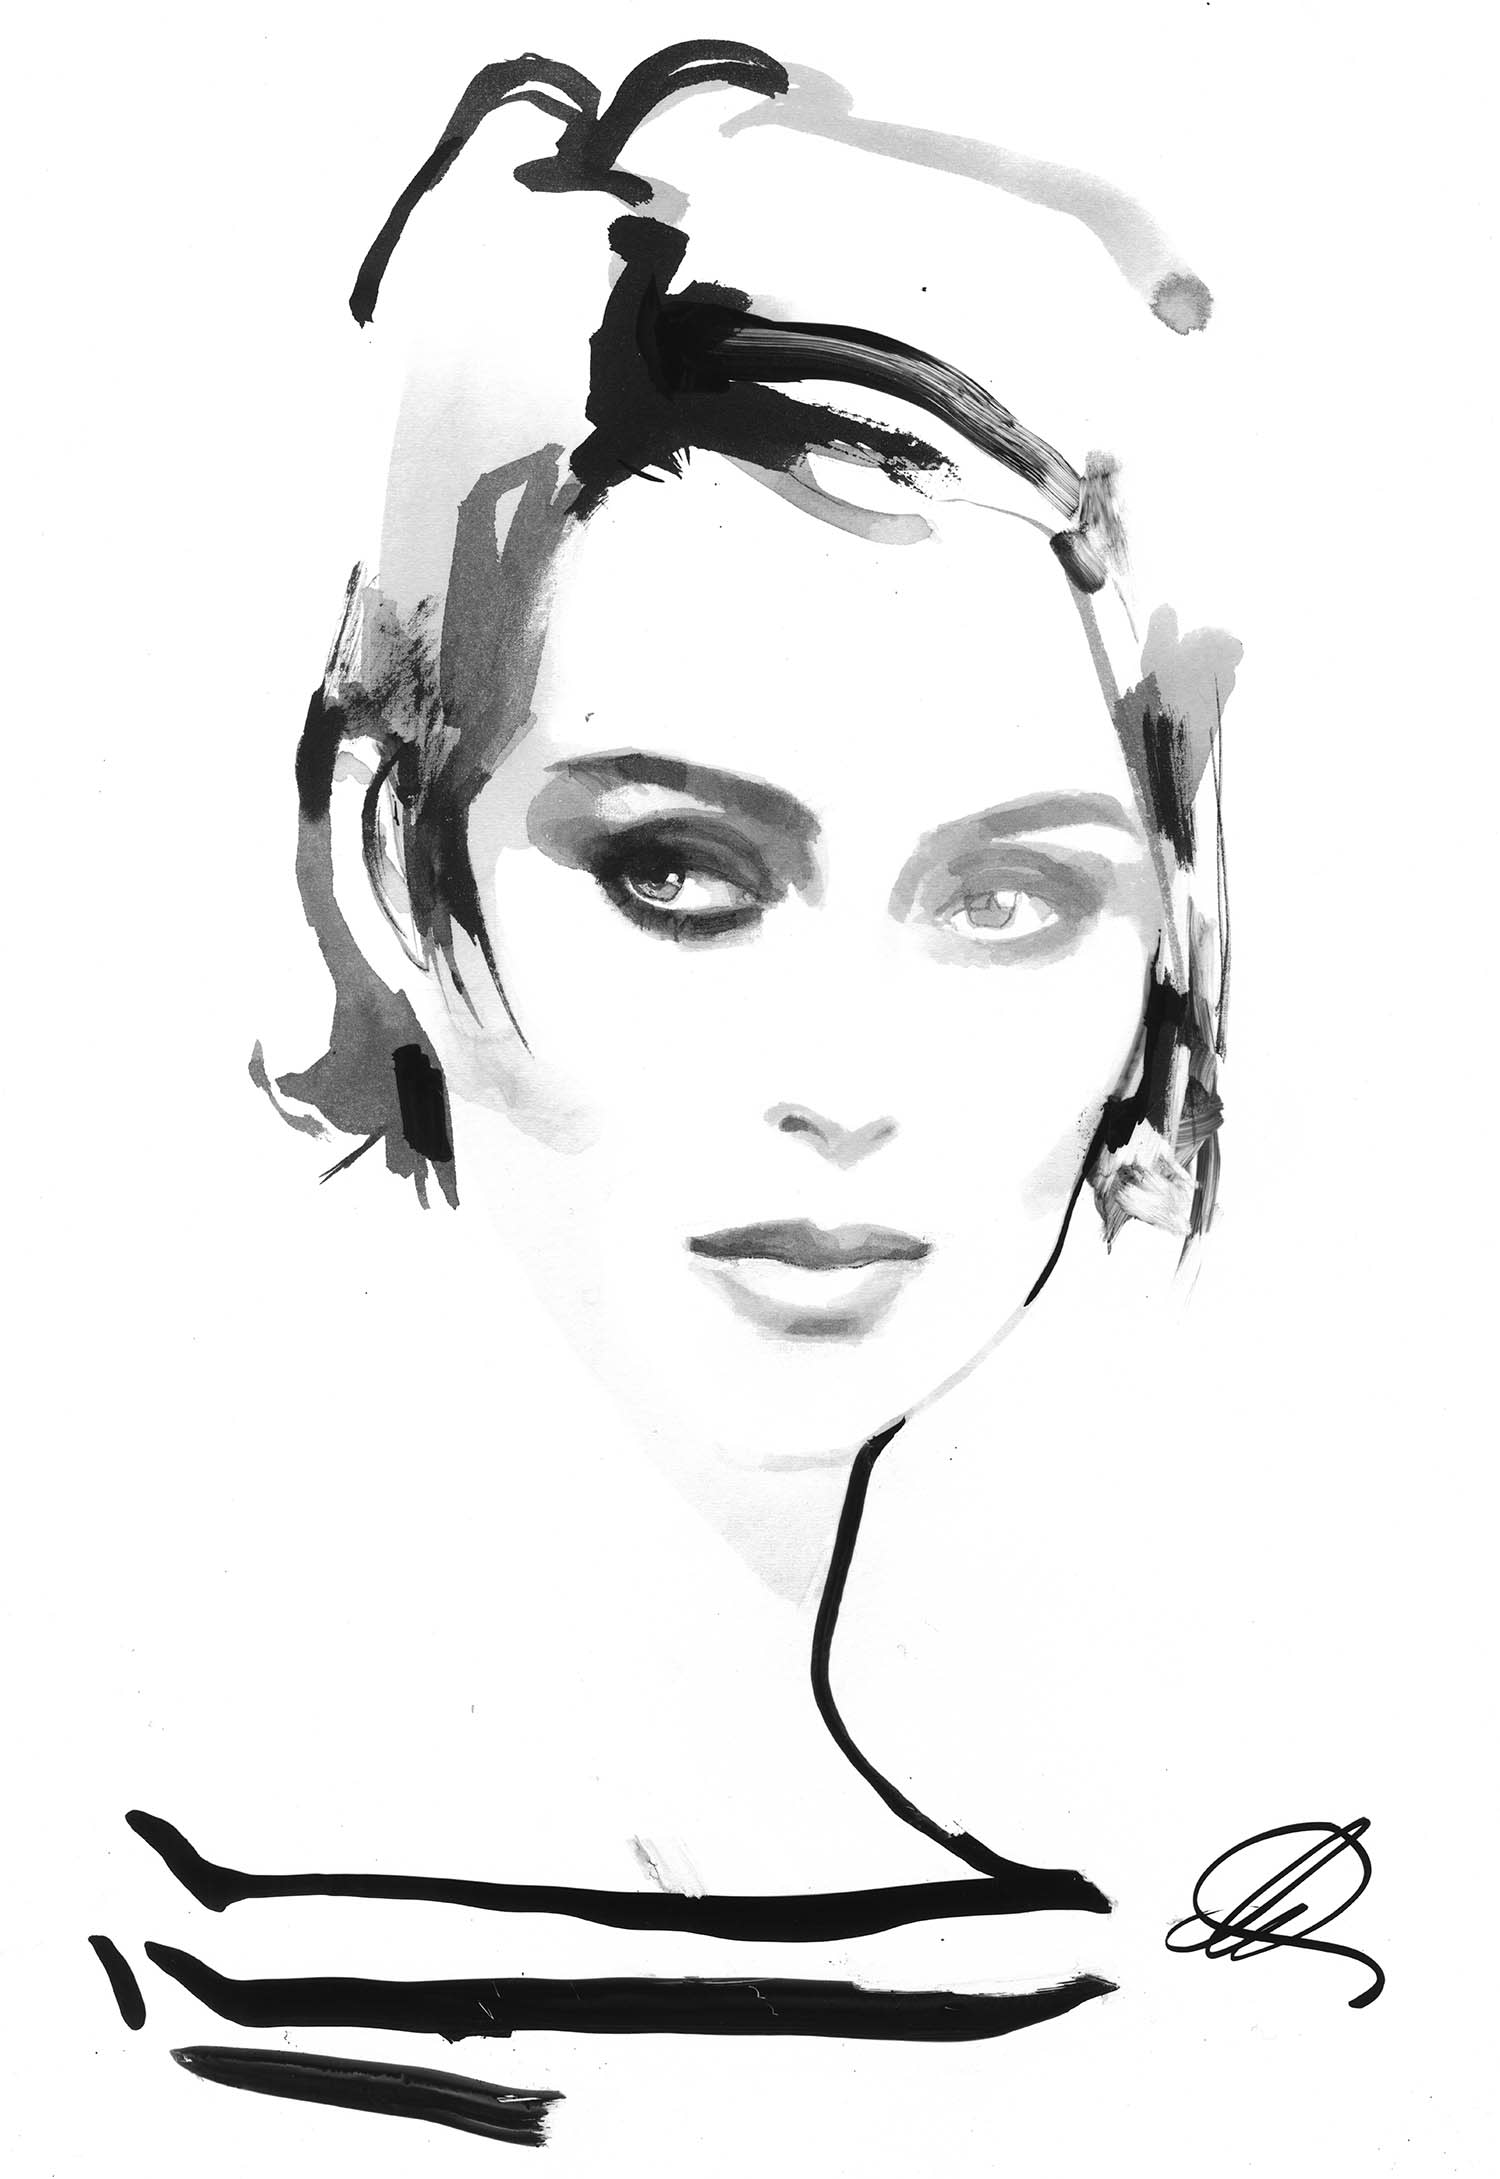 Michael Kors joins forces with artist David Downton for